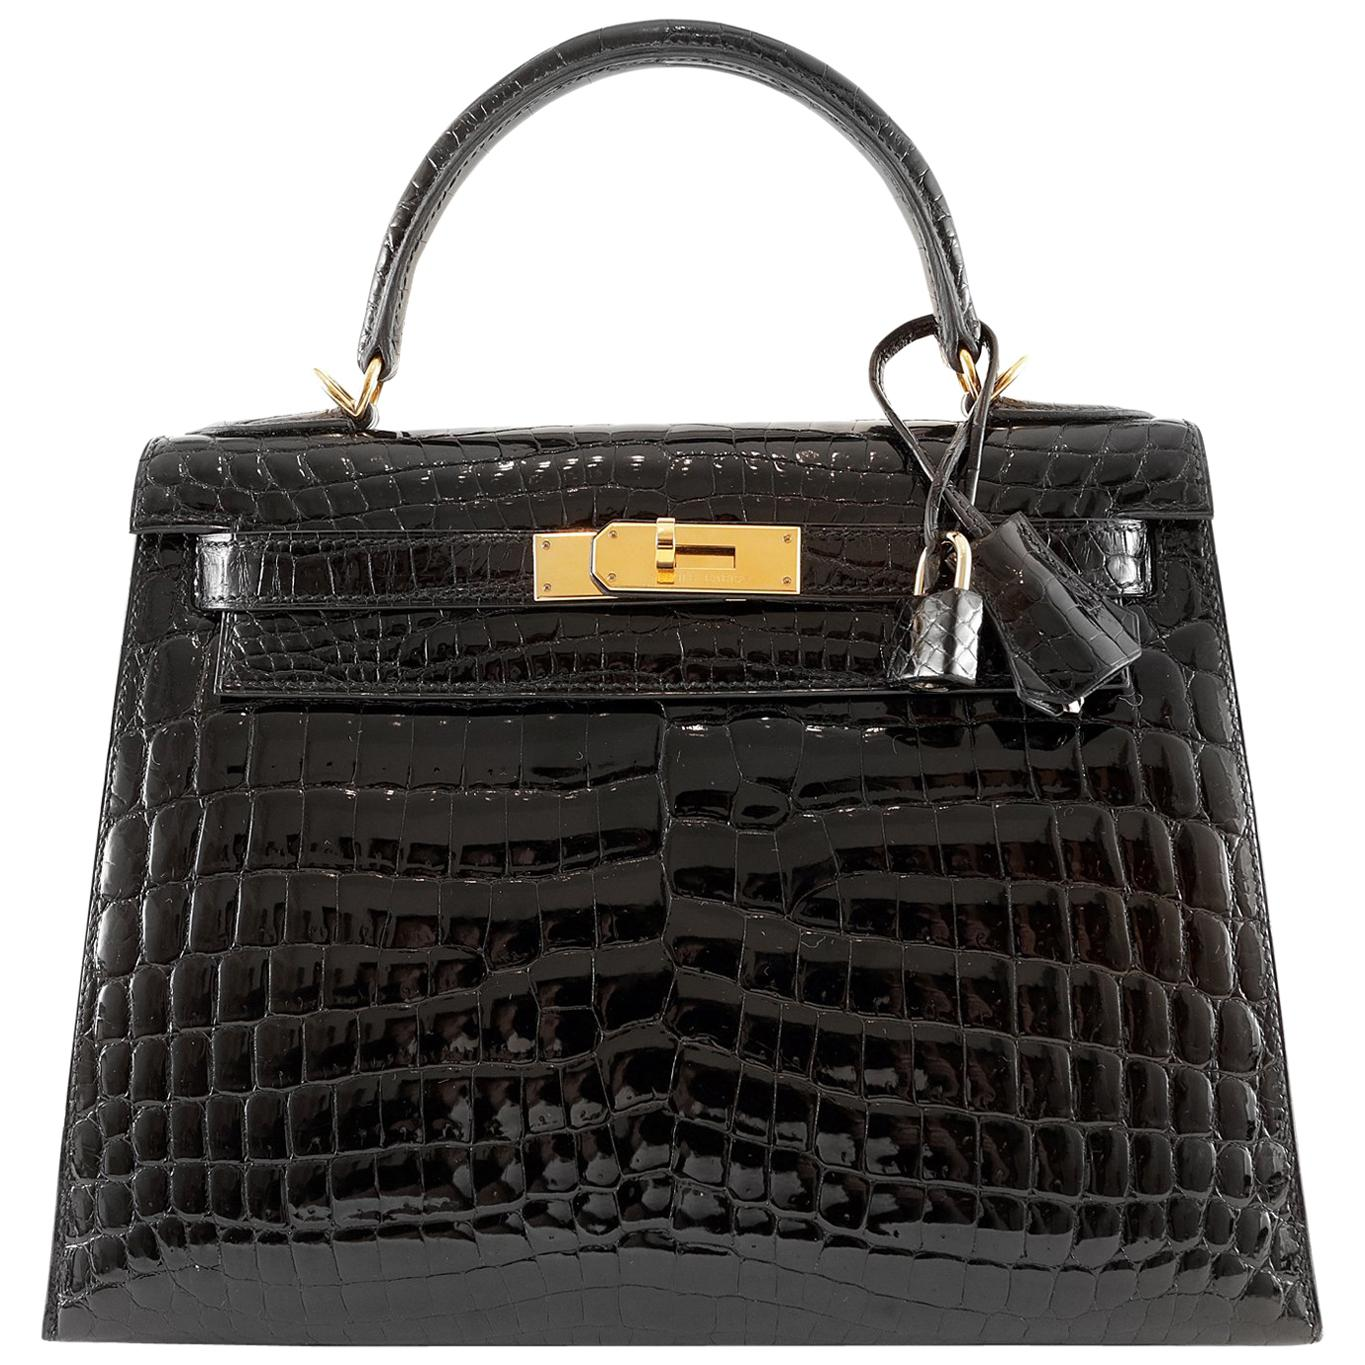 17d9e25e7939 Crocodile Leather Handbags - 560 For Sale on 1stdibs